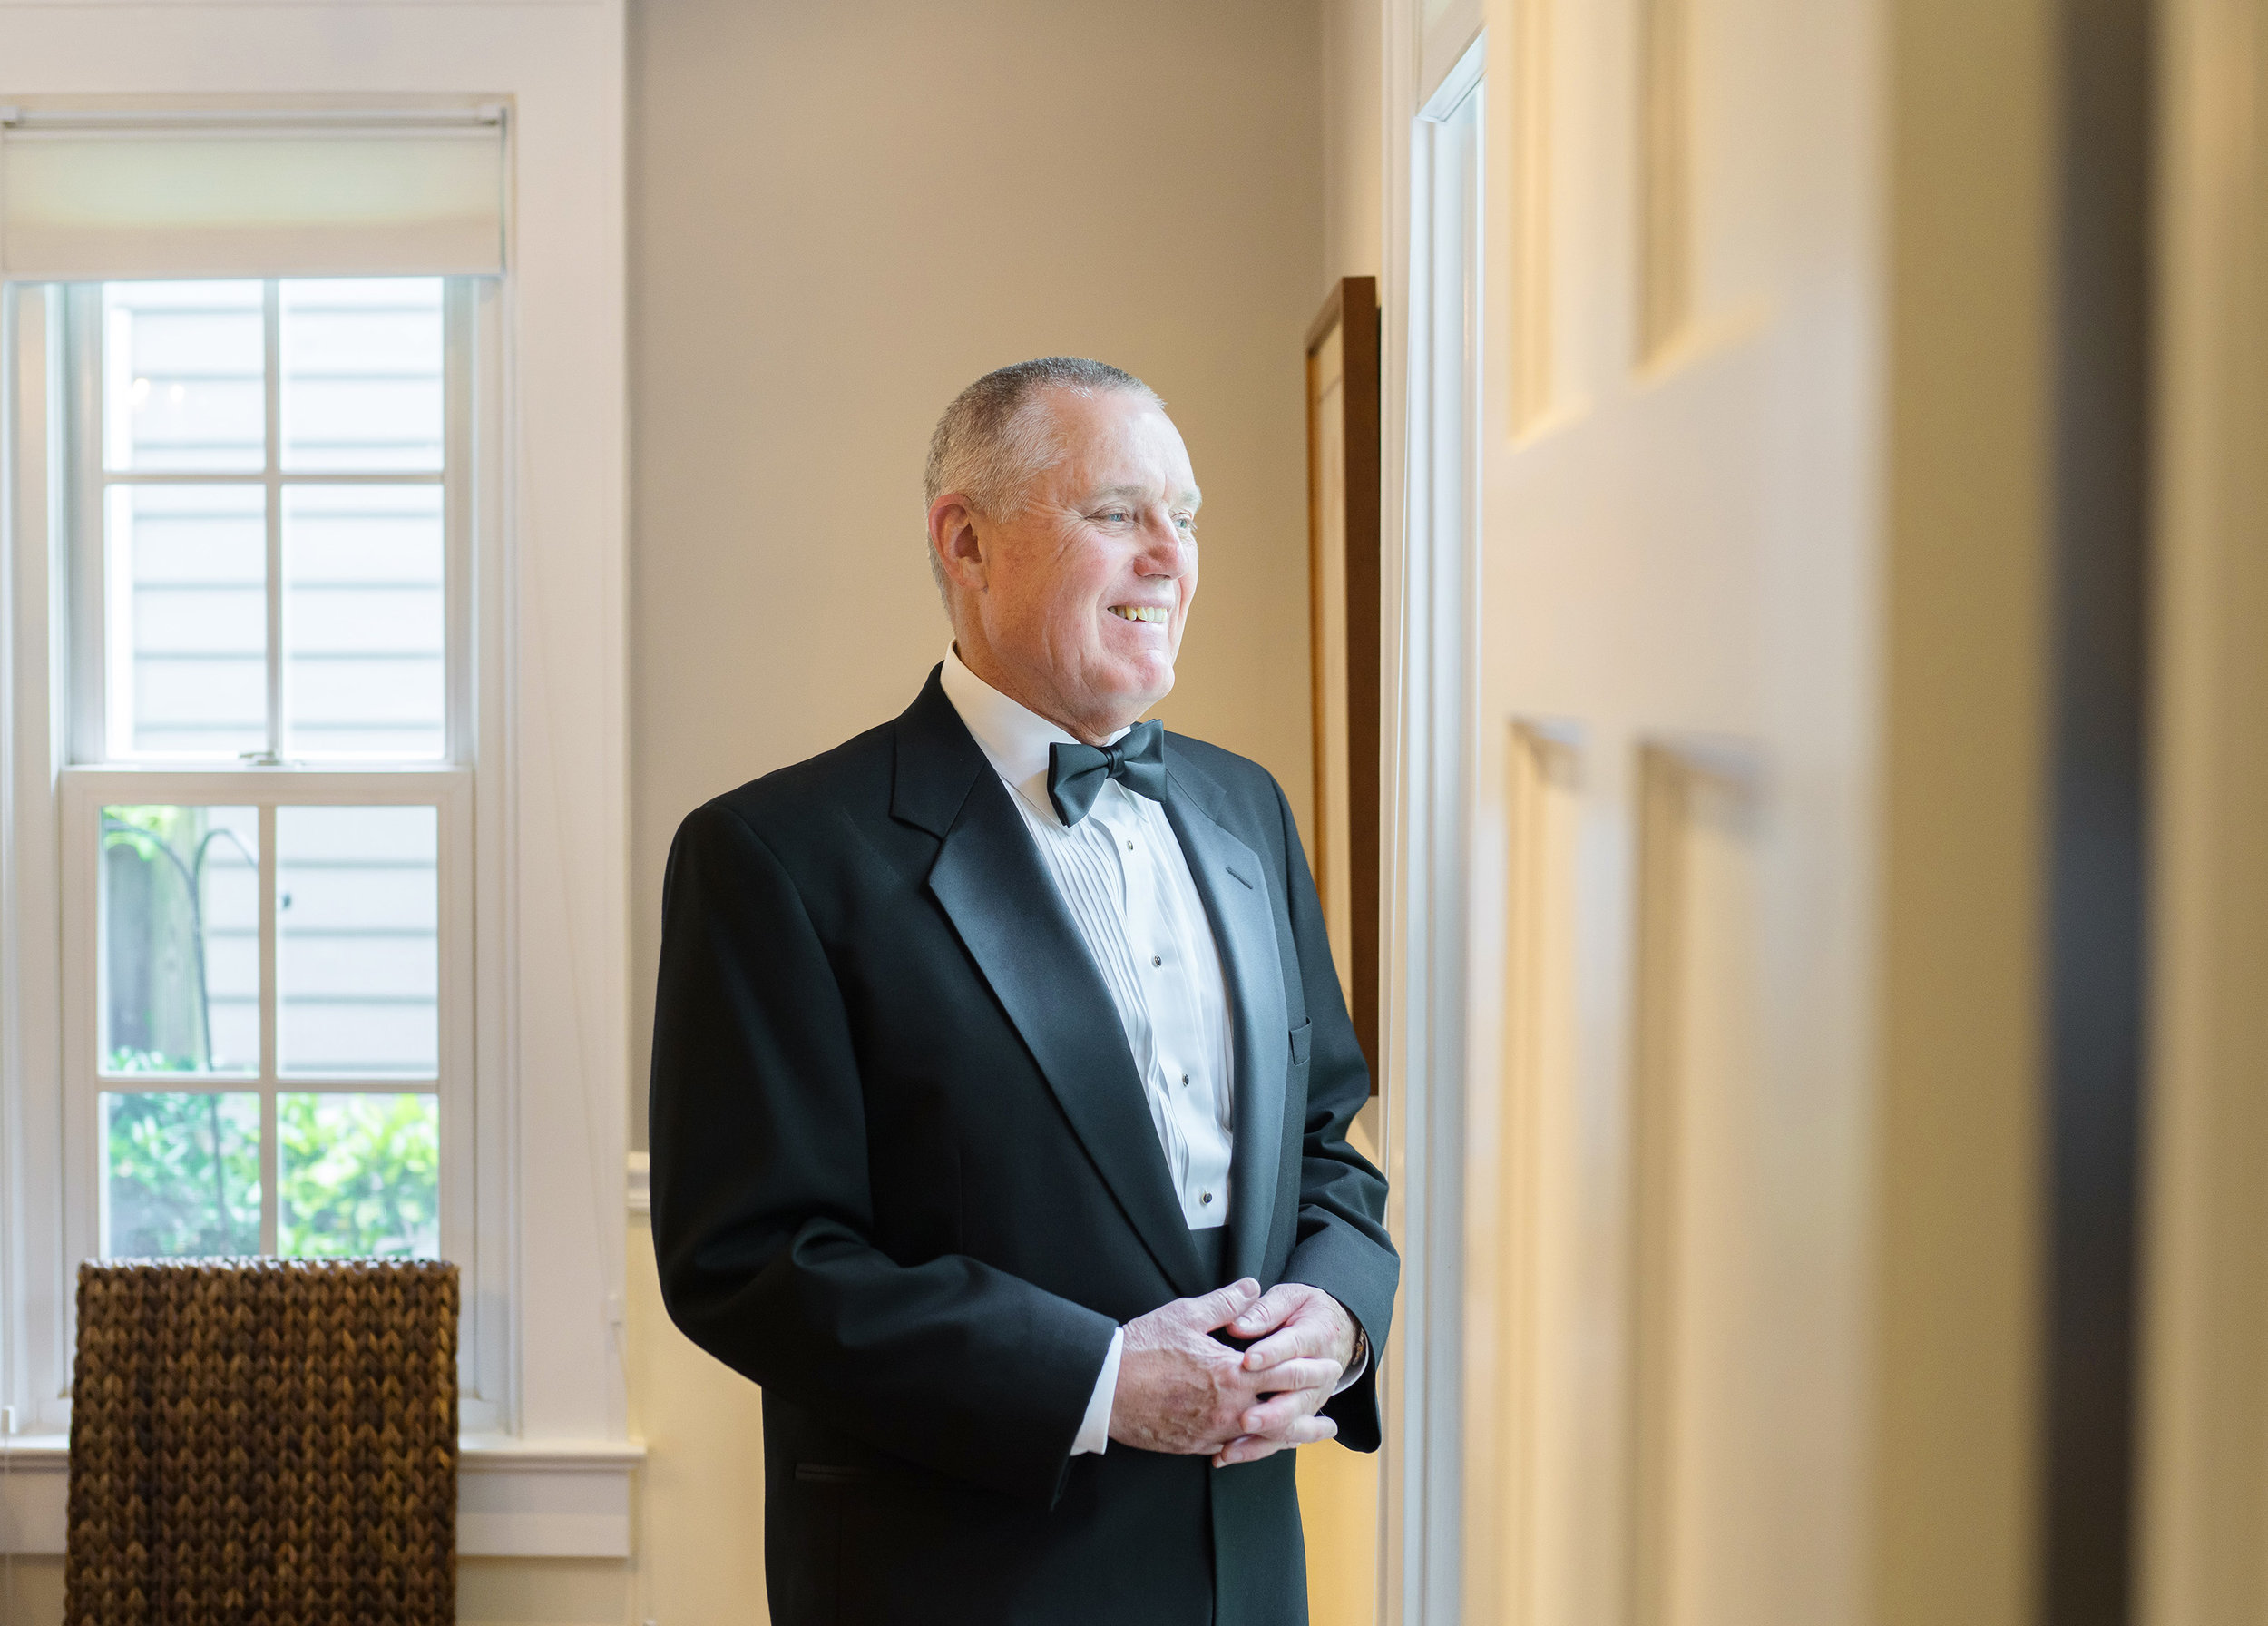 Father of the bride classic portraits in bethesda maryland